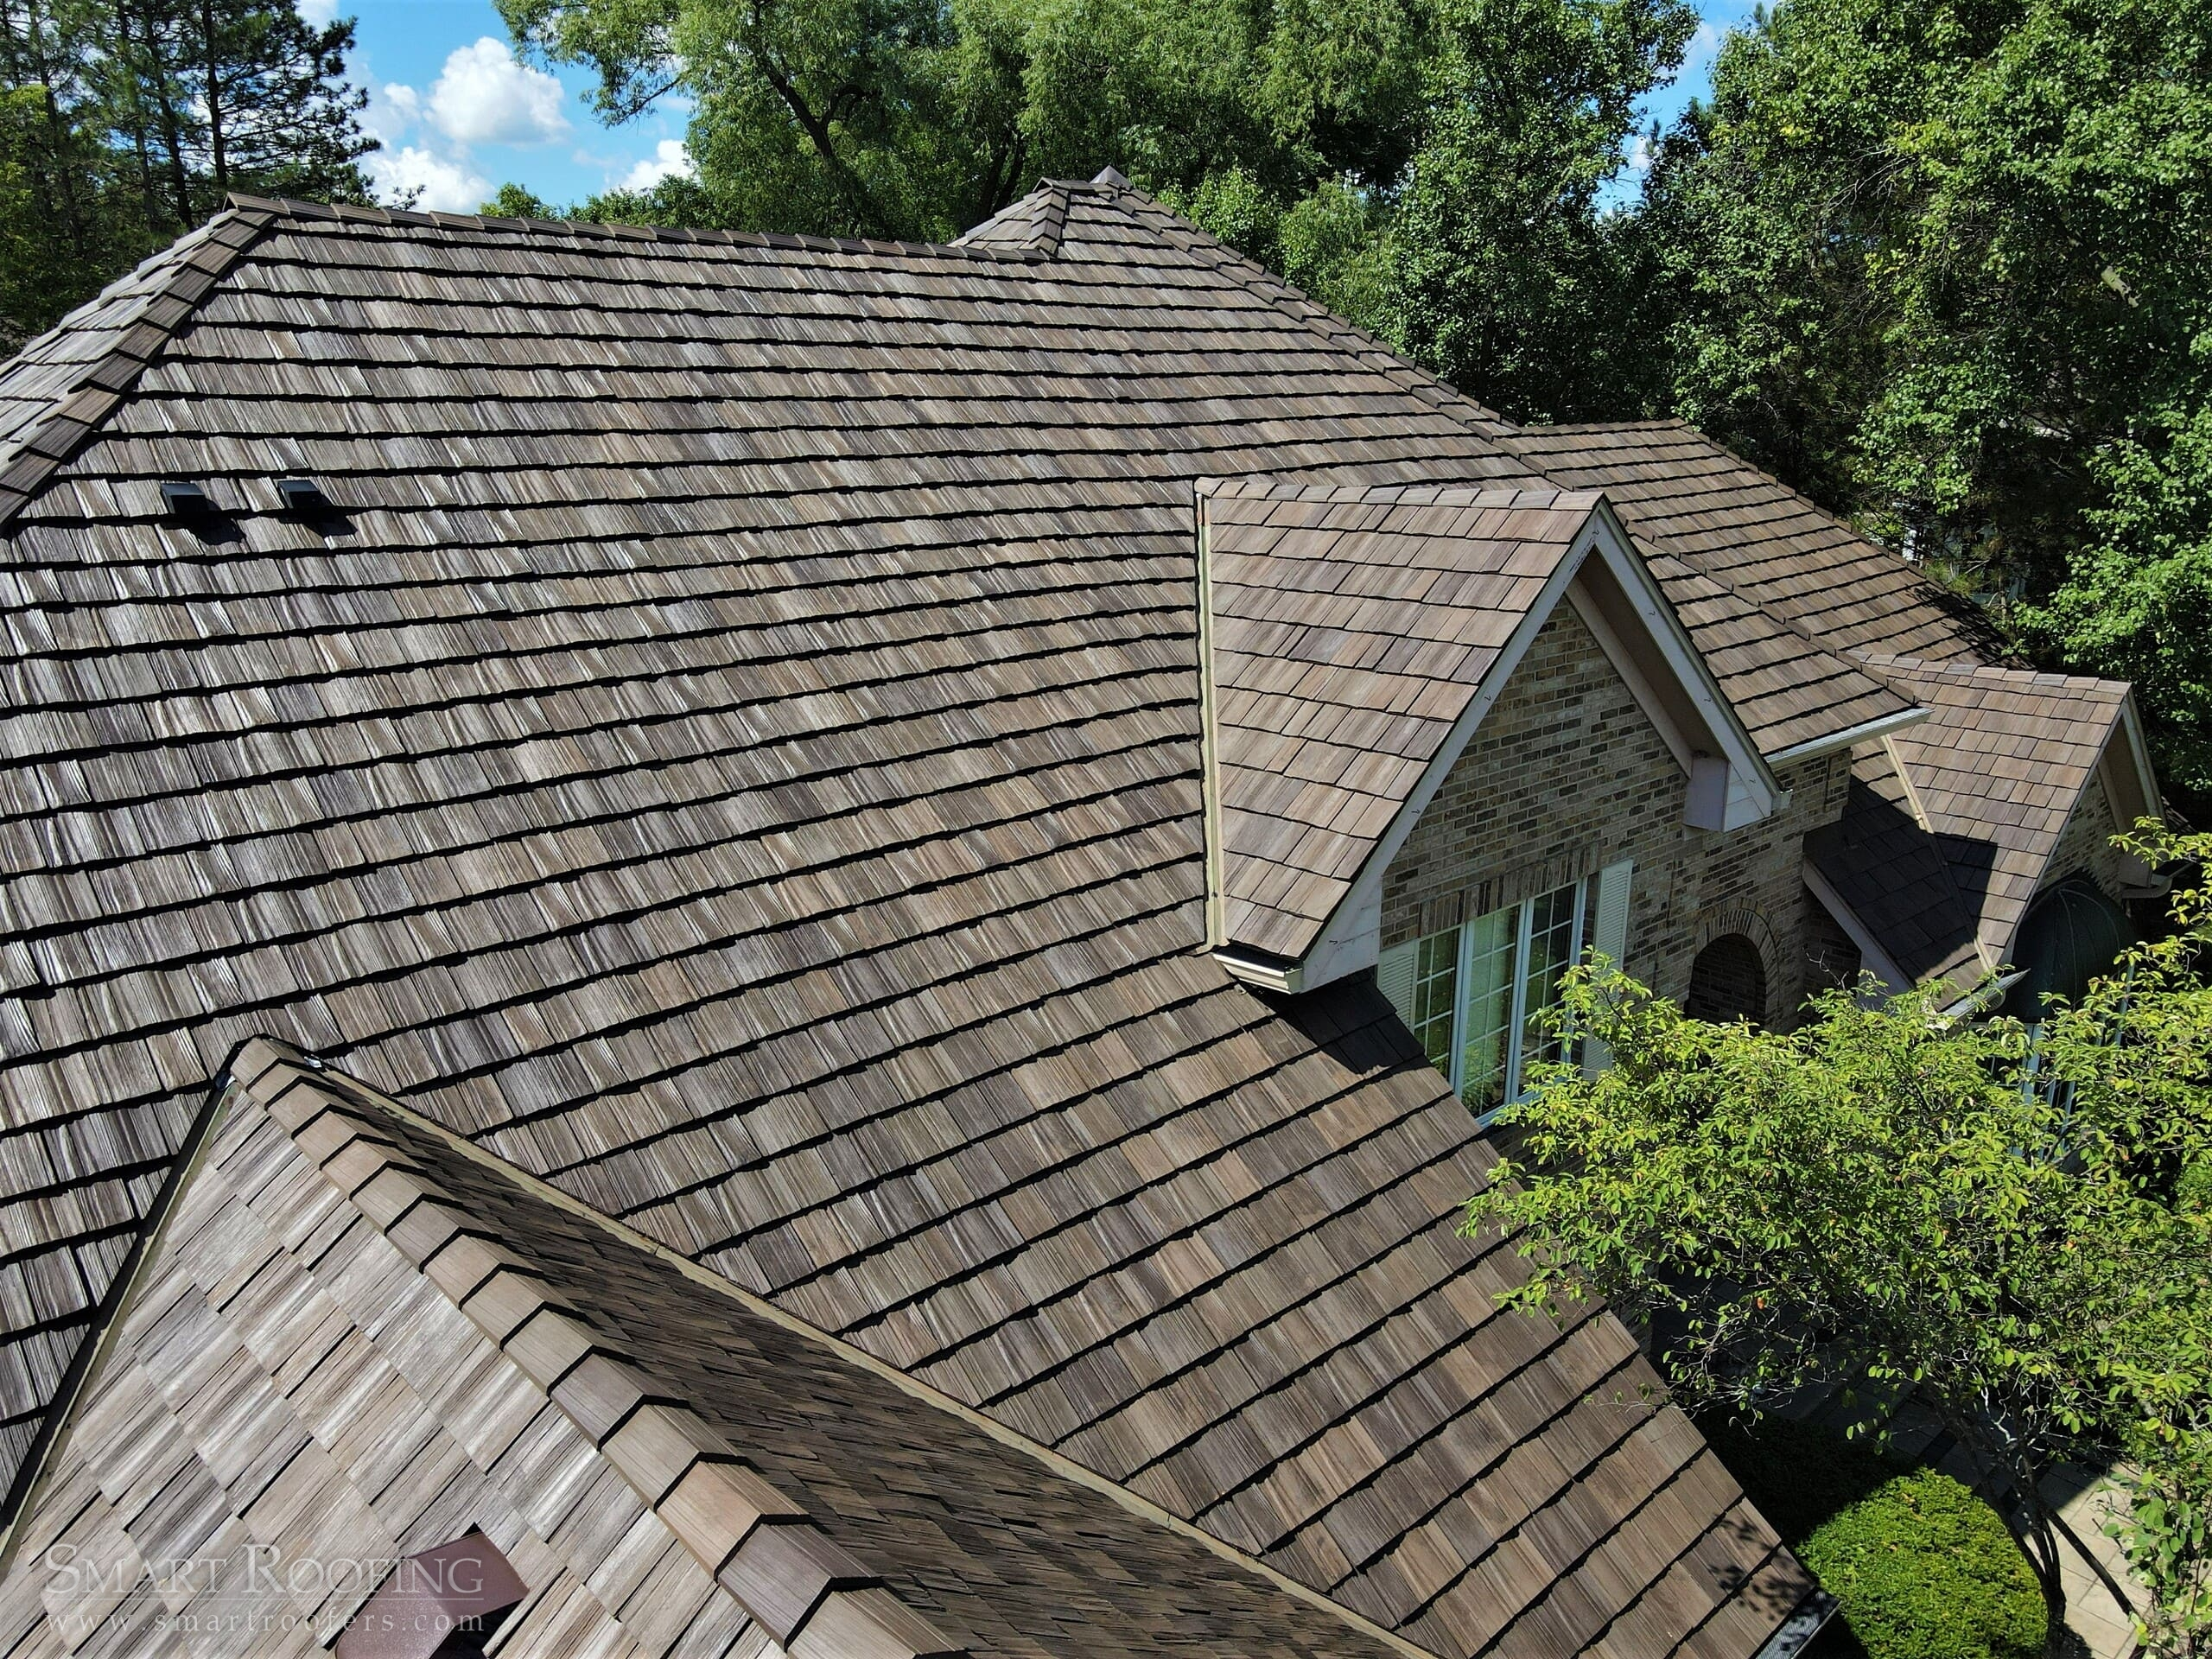 The view of a composite roof.